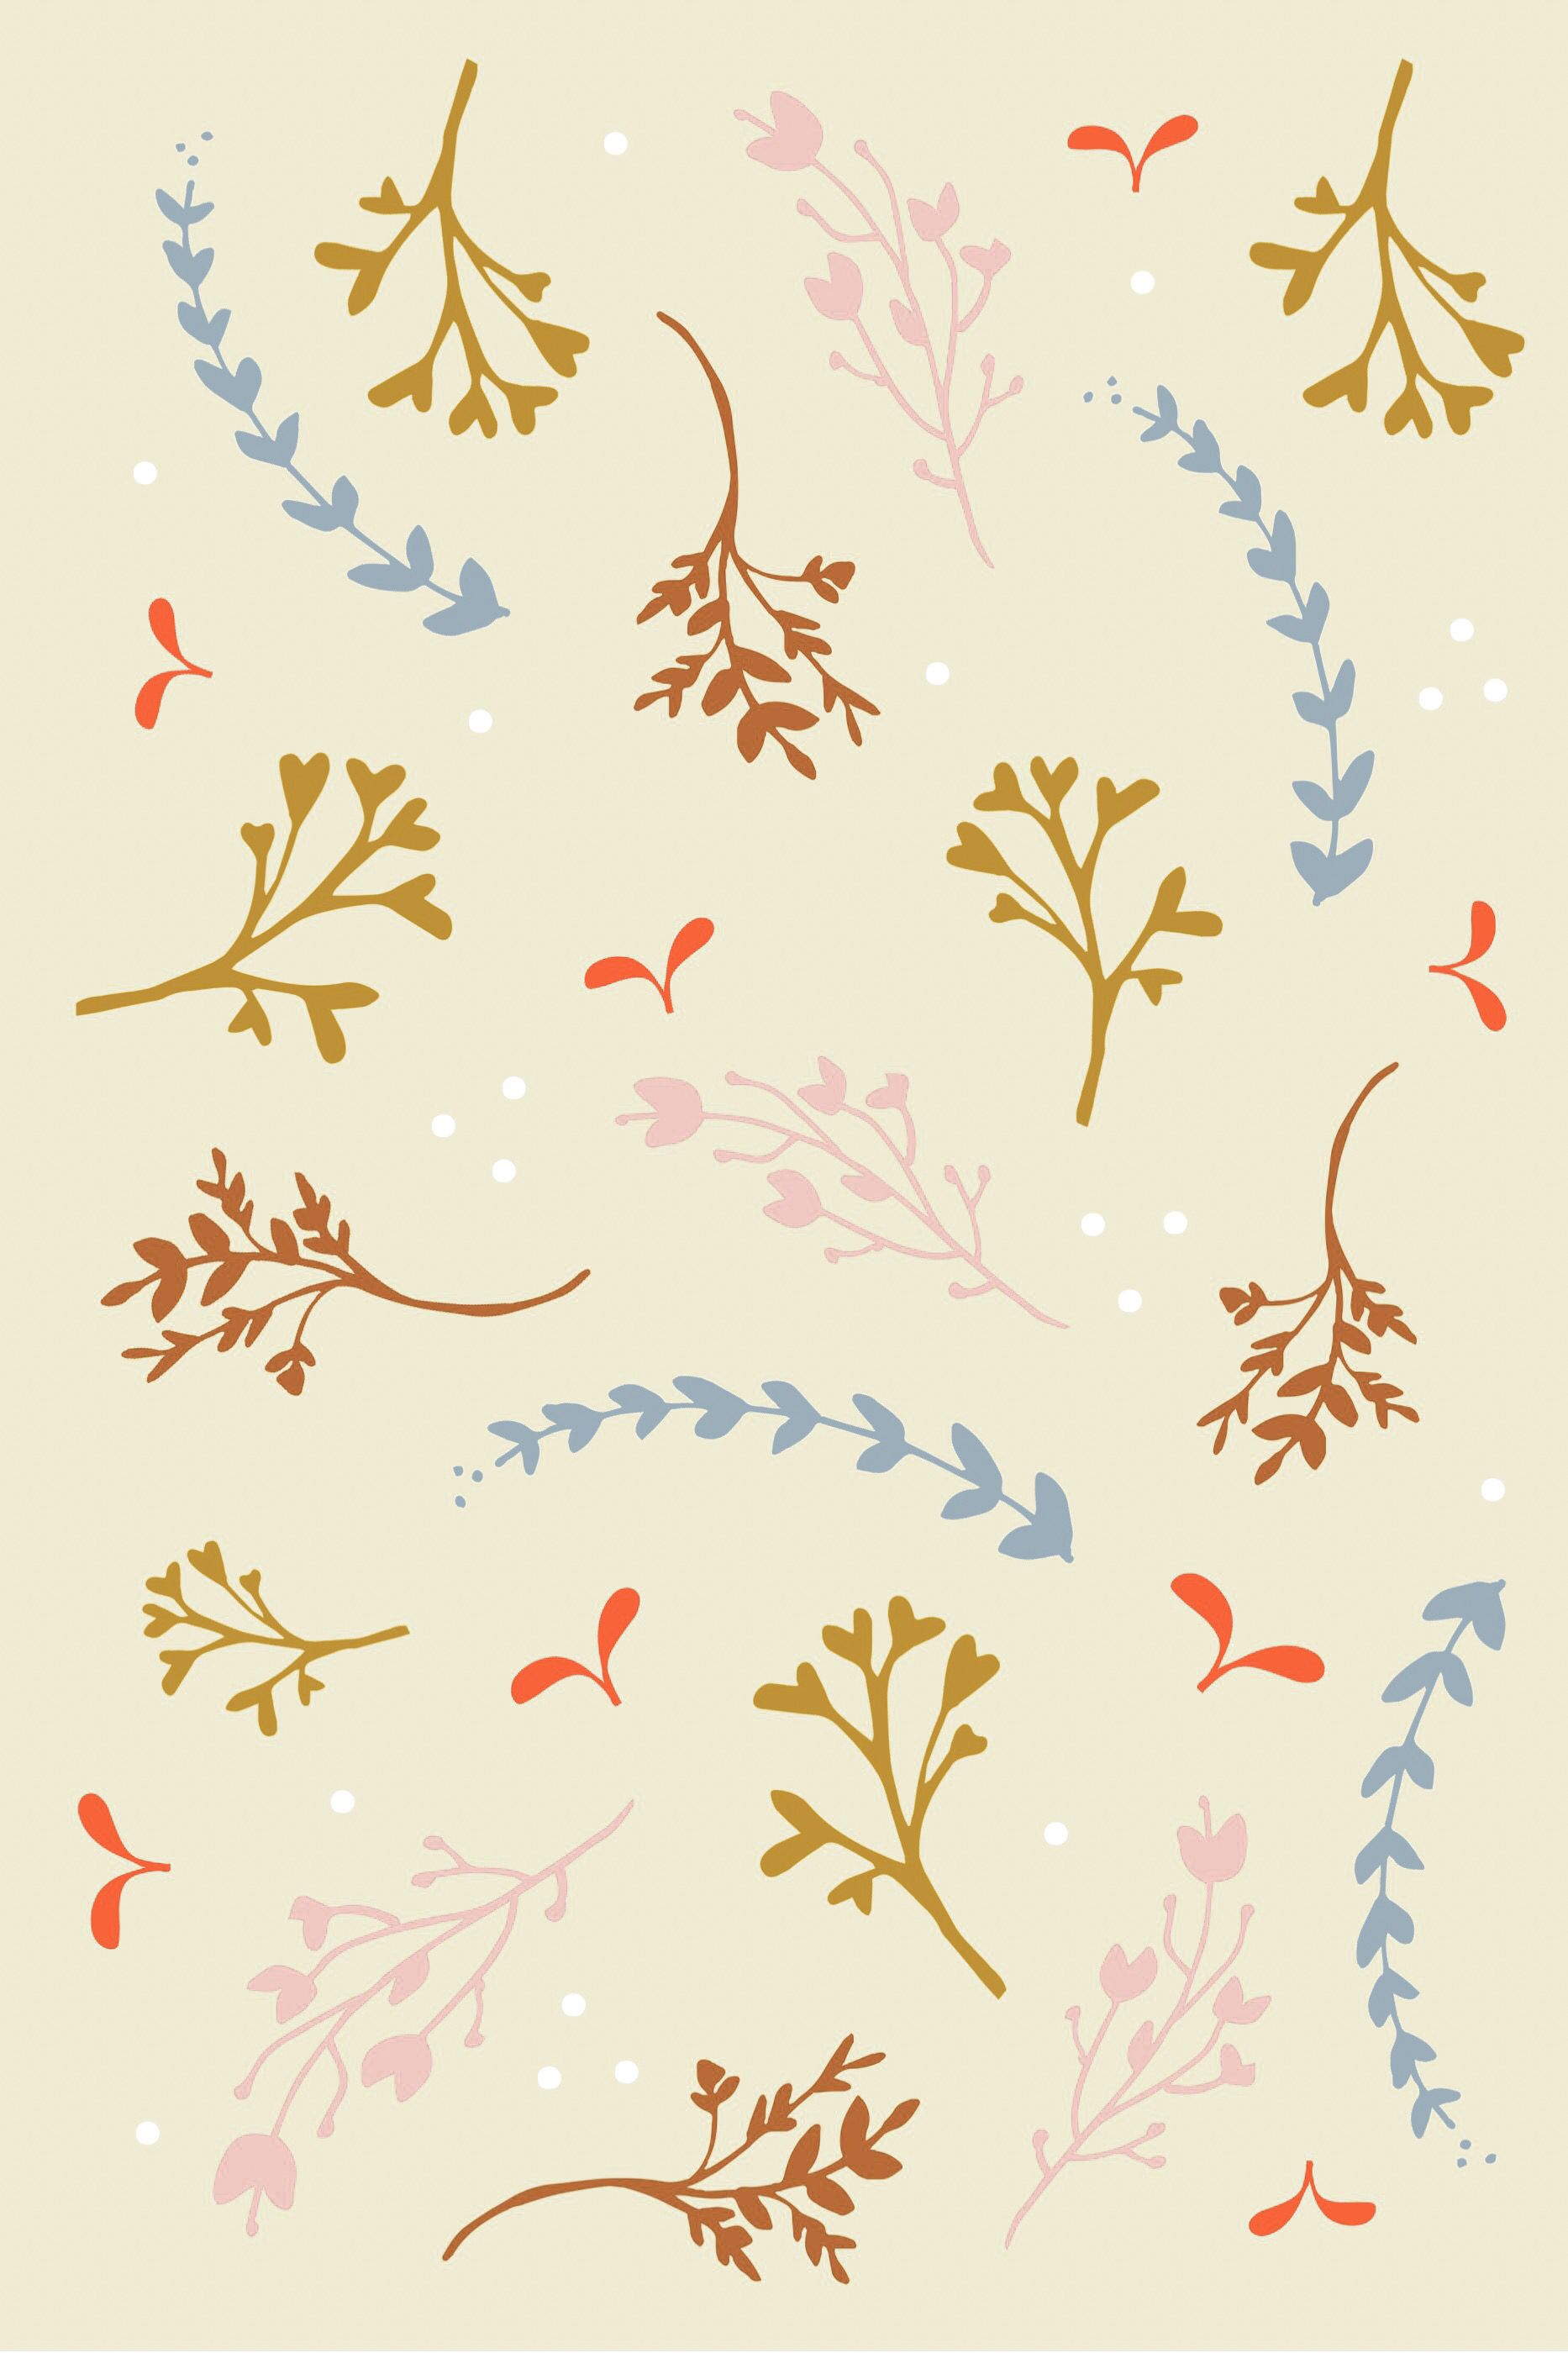 Dainty Floral Print Floral Prints Prints Backgrounds Girly